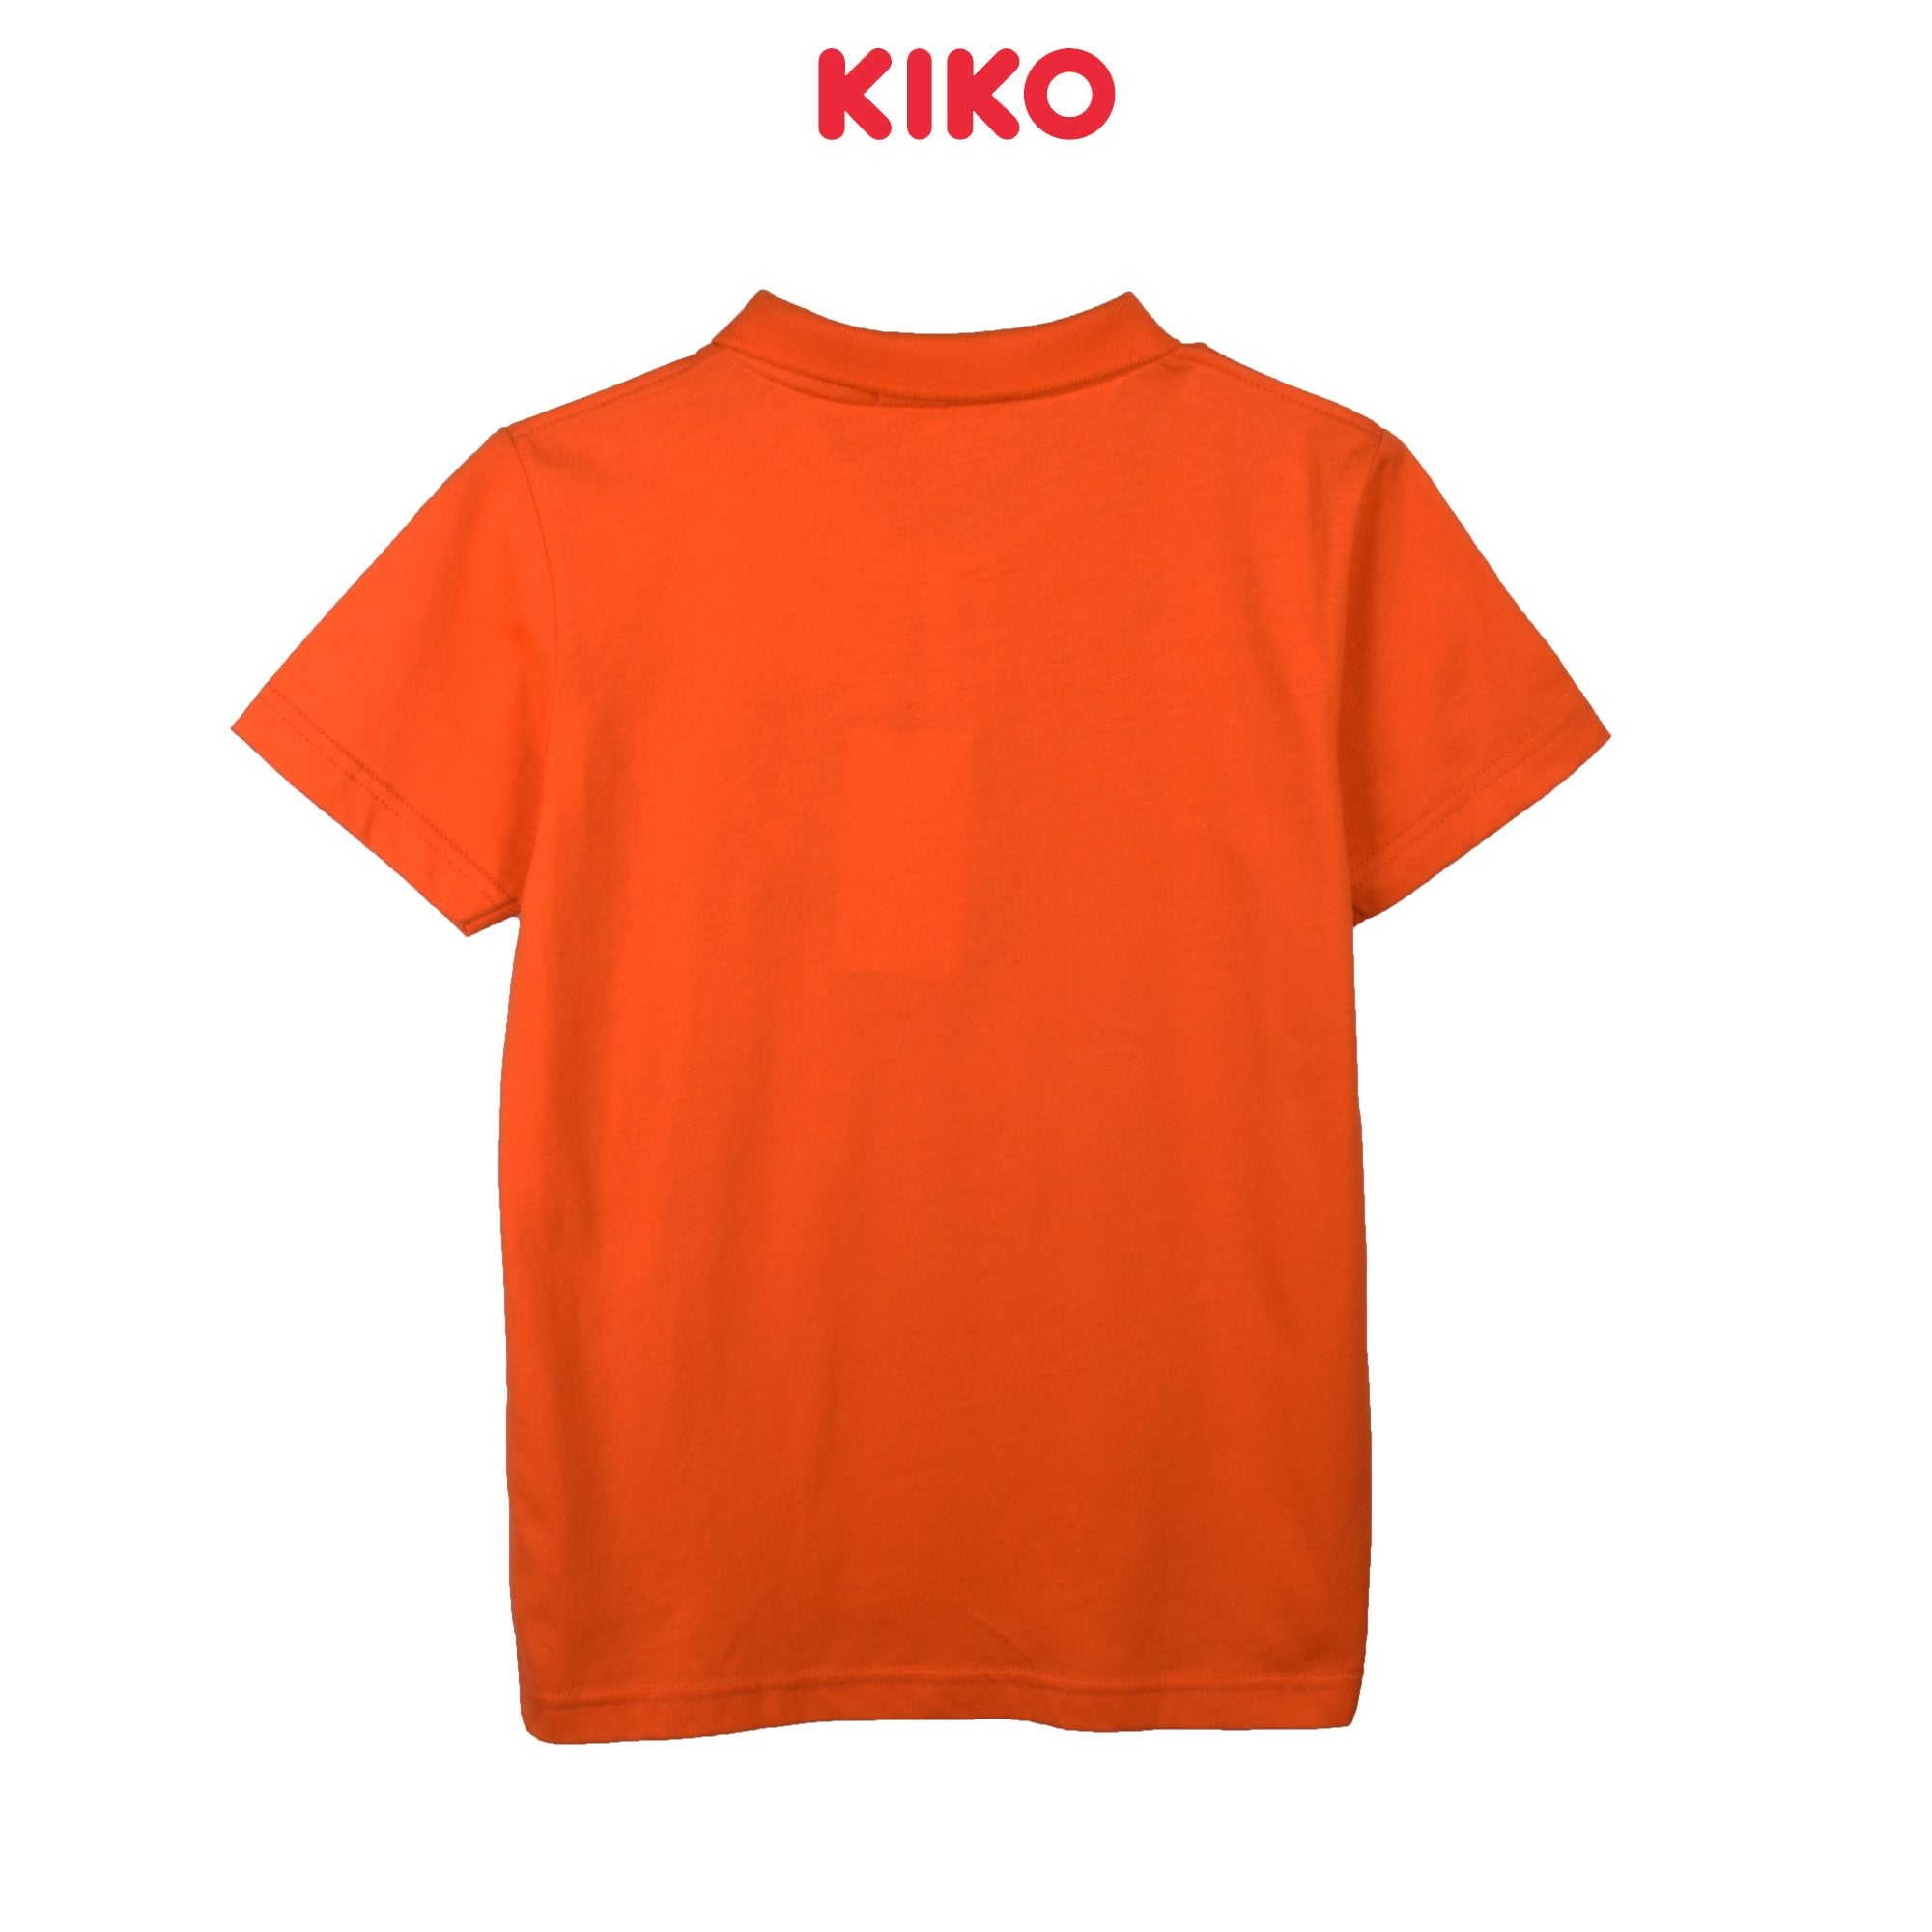 KIKO BOY BASIC SHORT SLEEVE COLLAR TEE - ORANGE K922103-1293-E5 : Buy KIKO online at CMG.MY